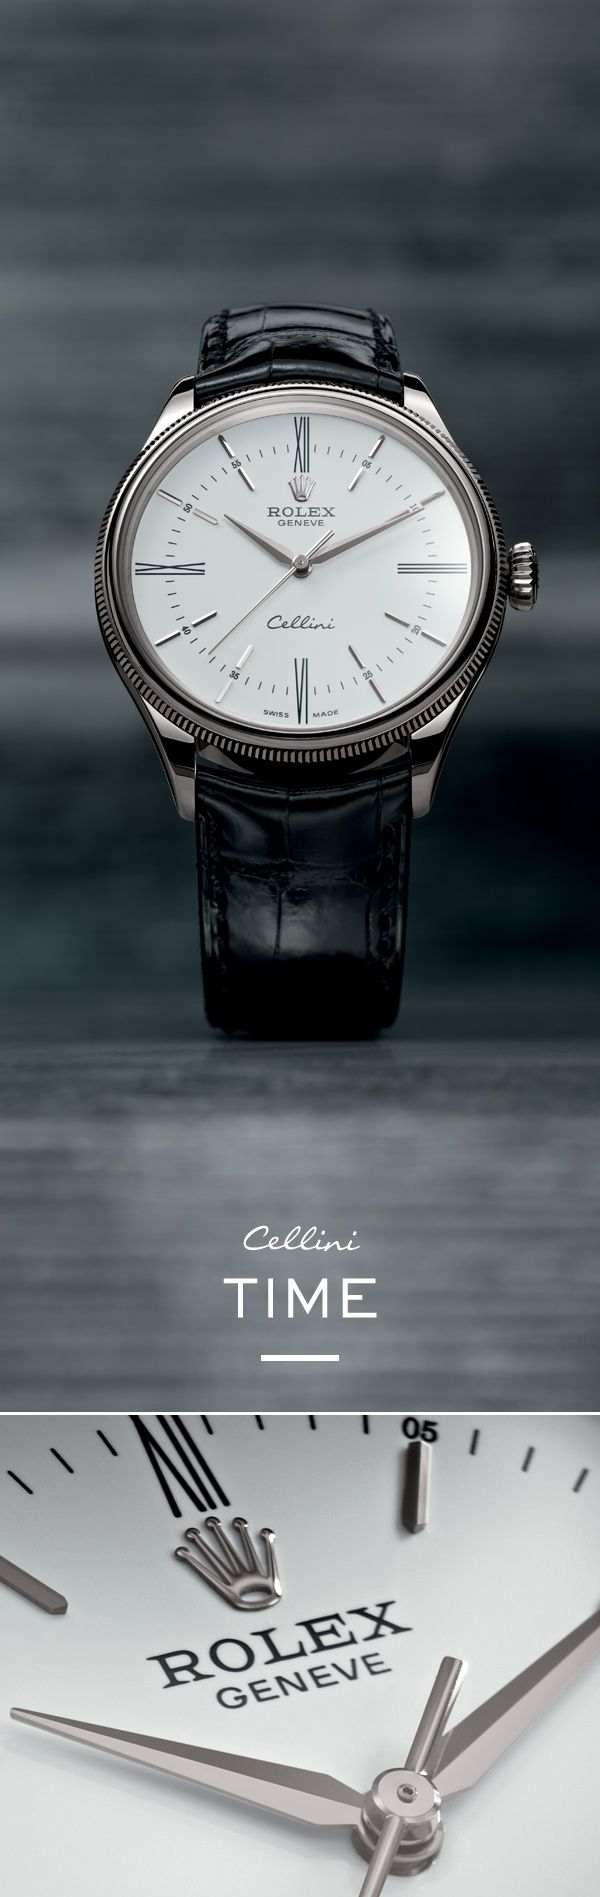 """The new Rolex Cellini Time 39 mm in white gold with a silver dial featuring a """"rayon flammé de la gloire"""" guilloche motif and mounted on an alligator leather strap."""